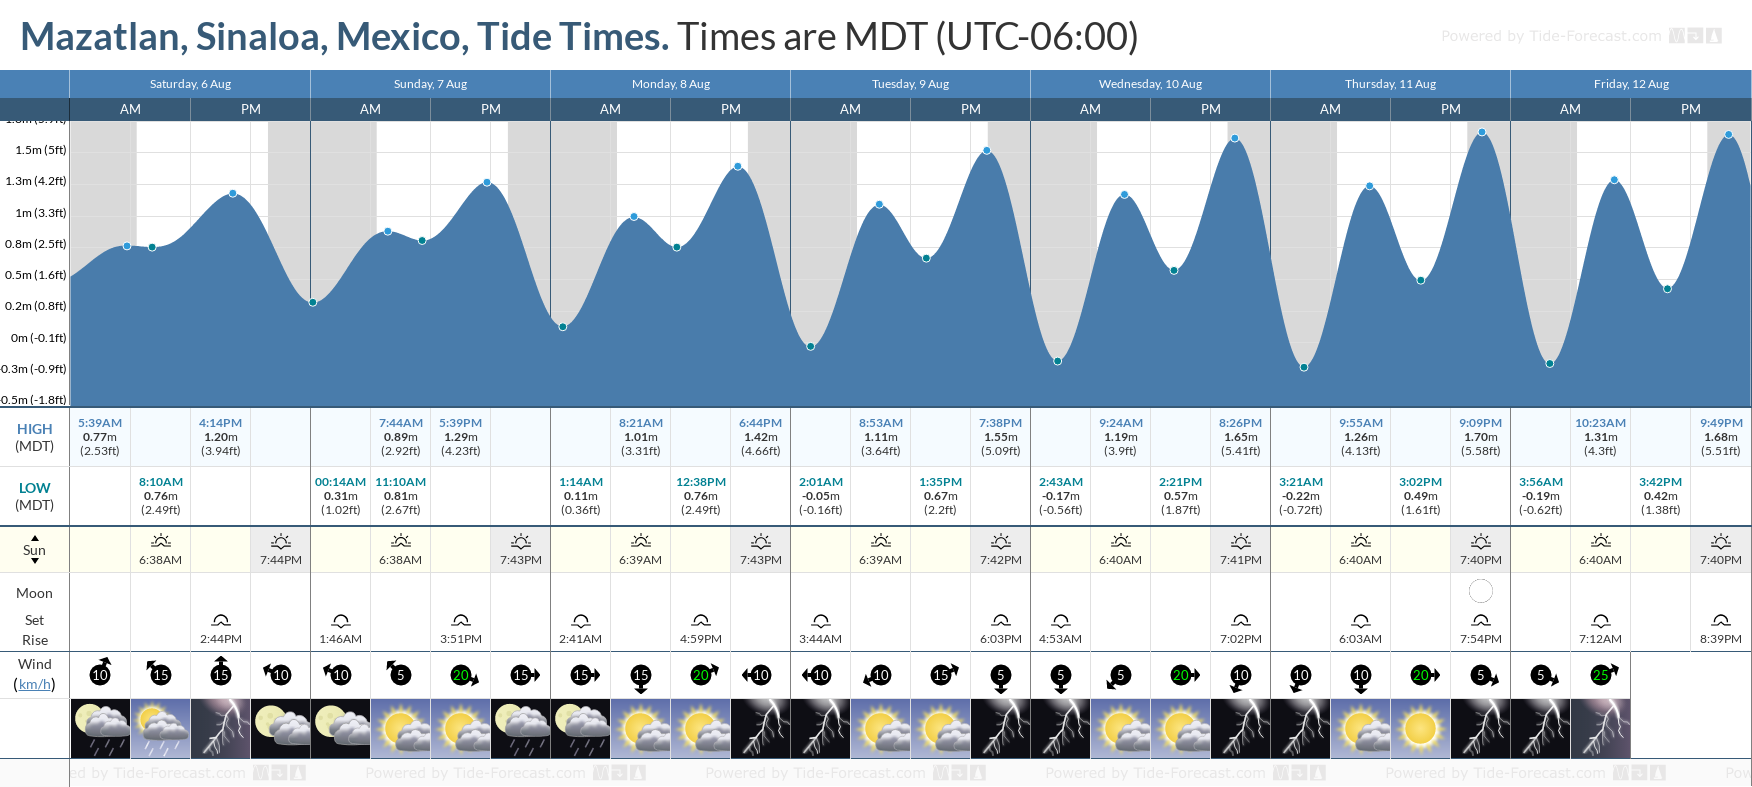 Mazatlan, Sinaloa, Mexico Tide Chart including high and low tide tide times for the next 7 days